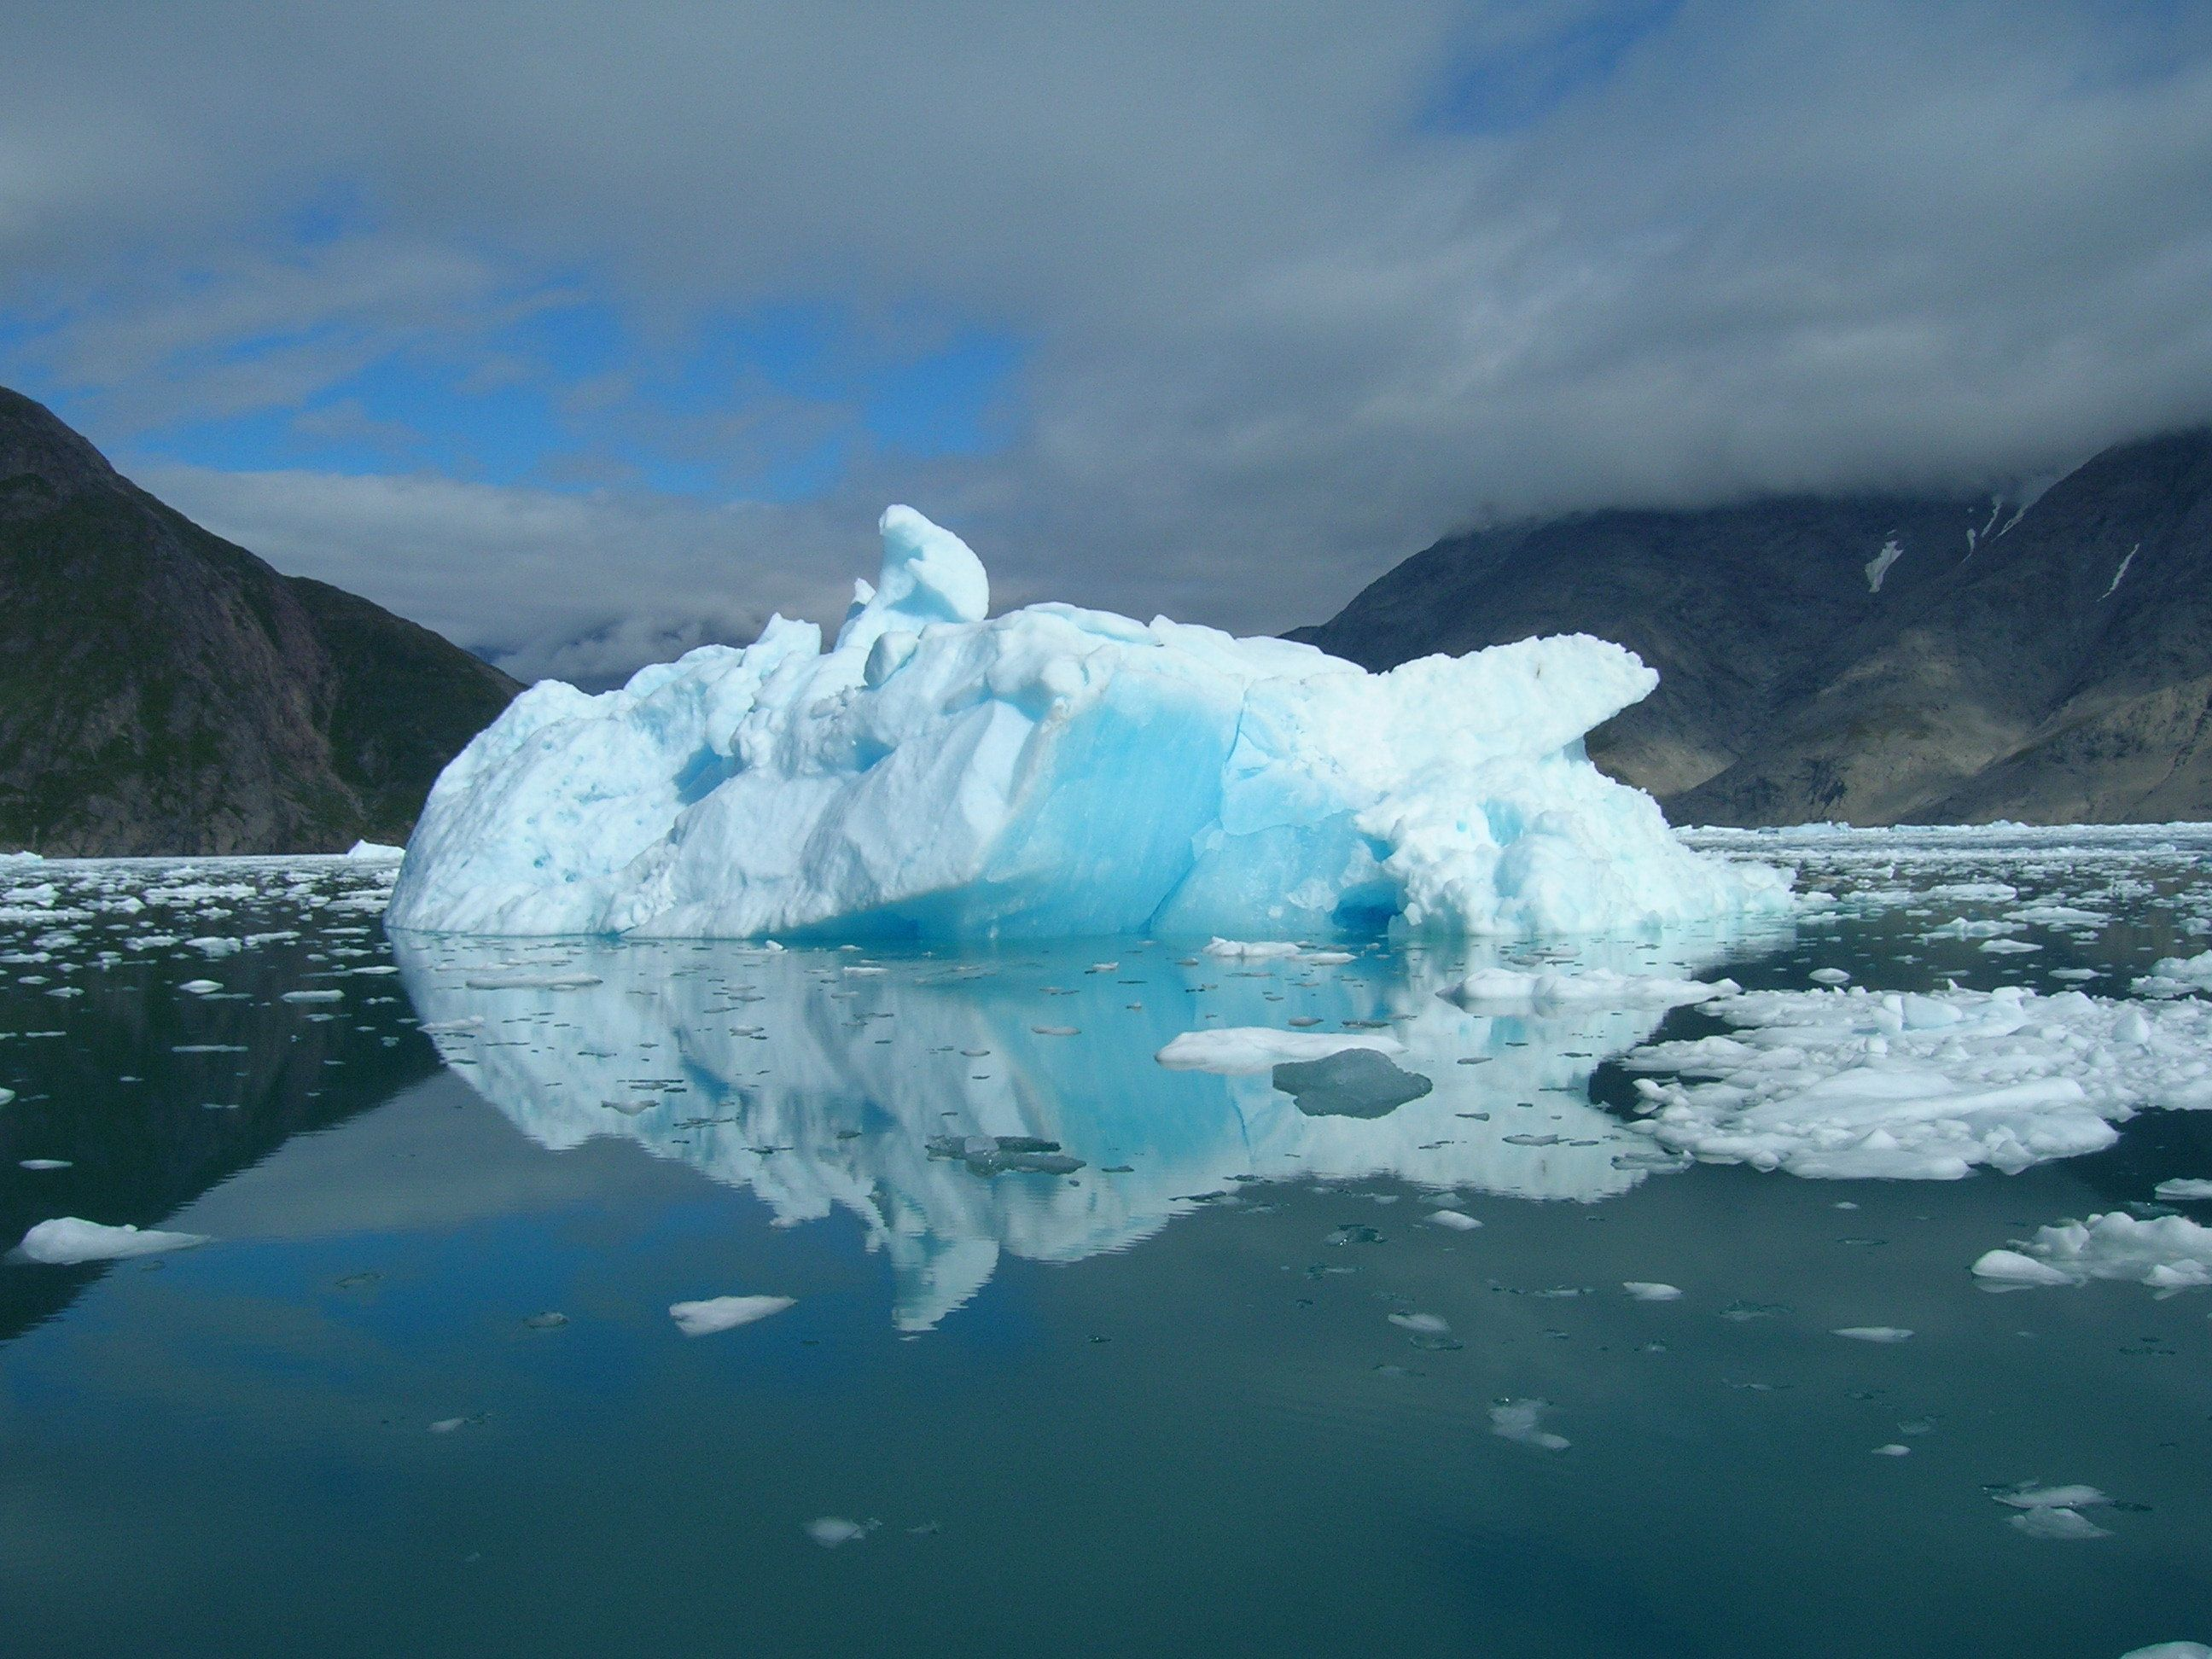 Iceberg floating in the sea at the coast of Greenland a beautiful summer day.